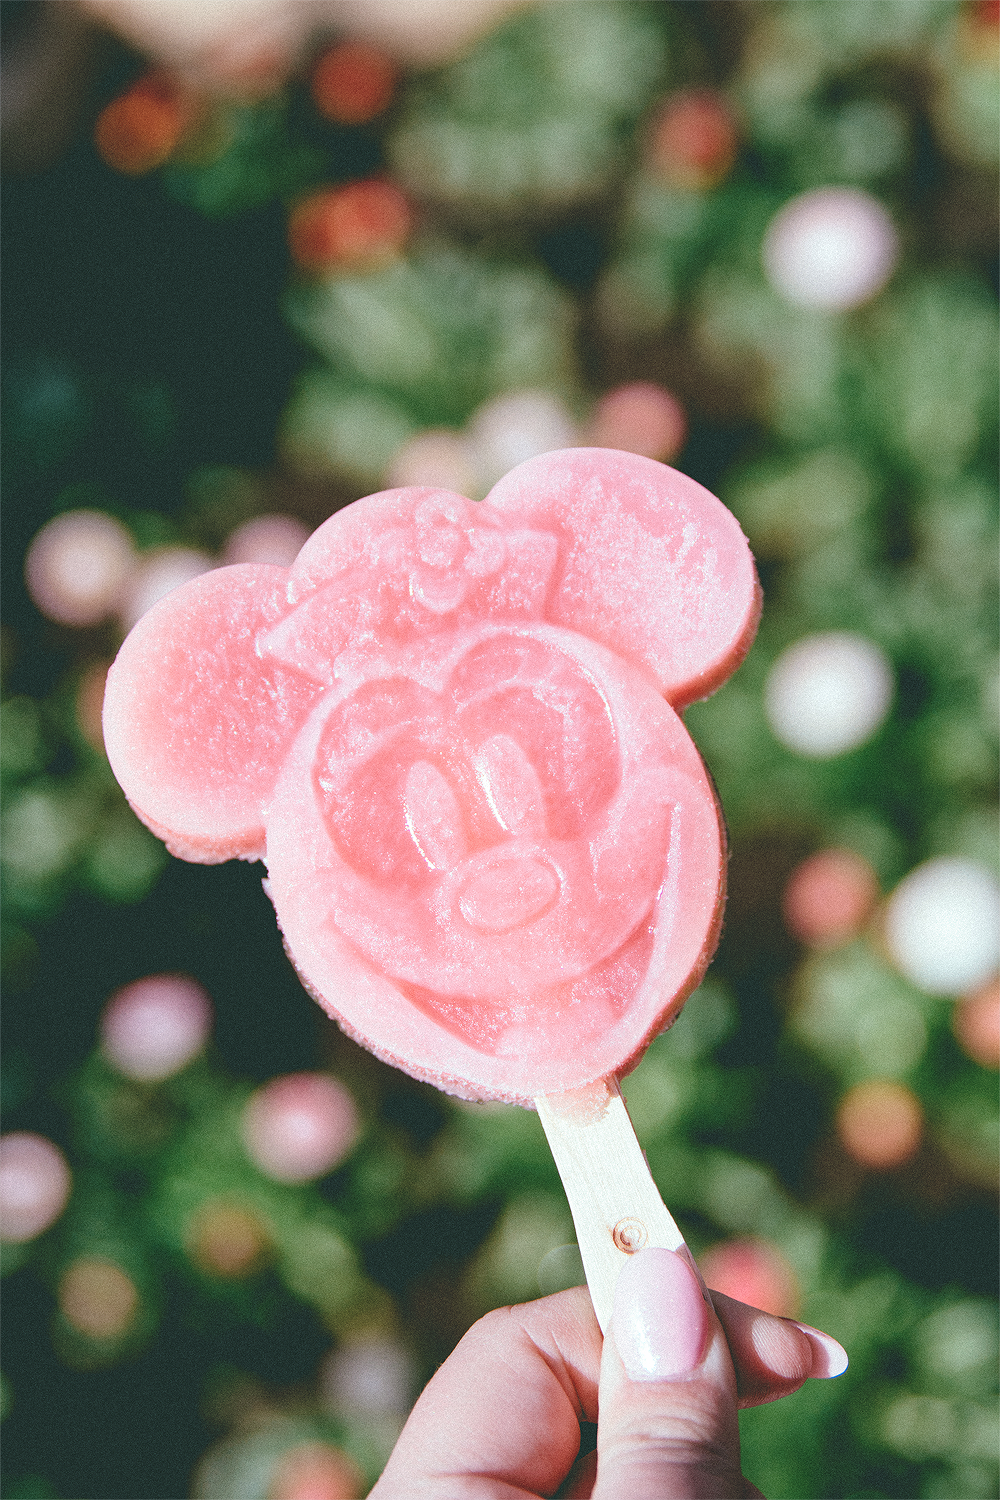 During our previous trip, I tried Mickey, so I was really looking forward to Minnie's peach (my favorite) and raspberry flavor. It was so delightful!